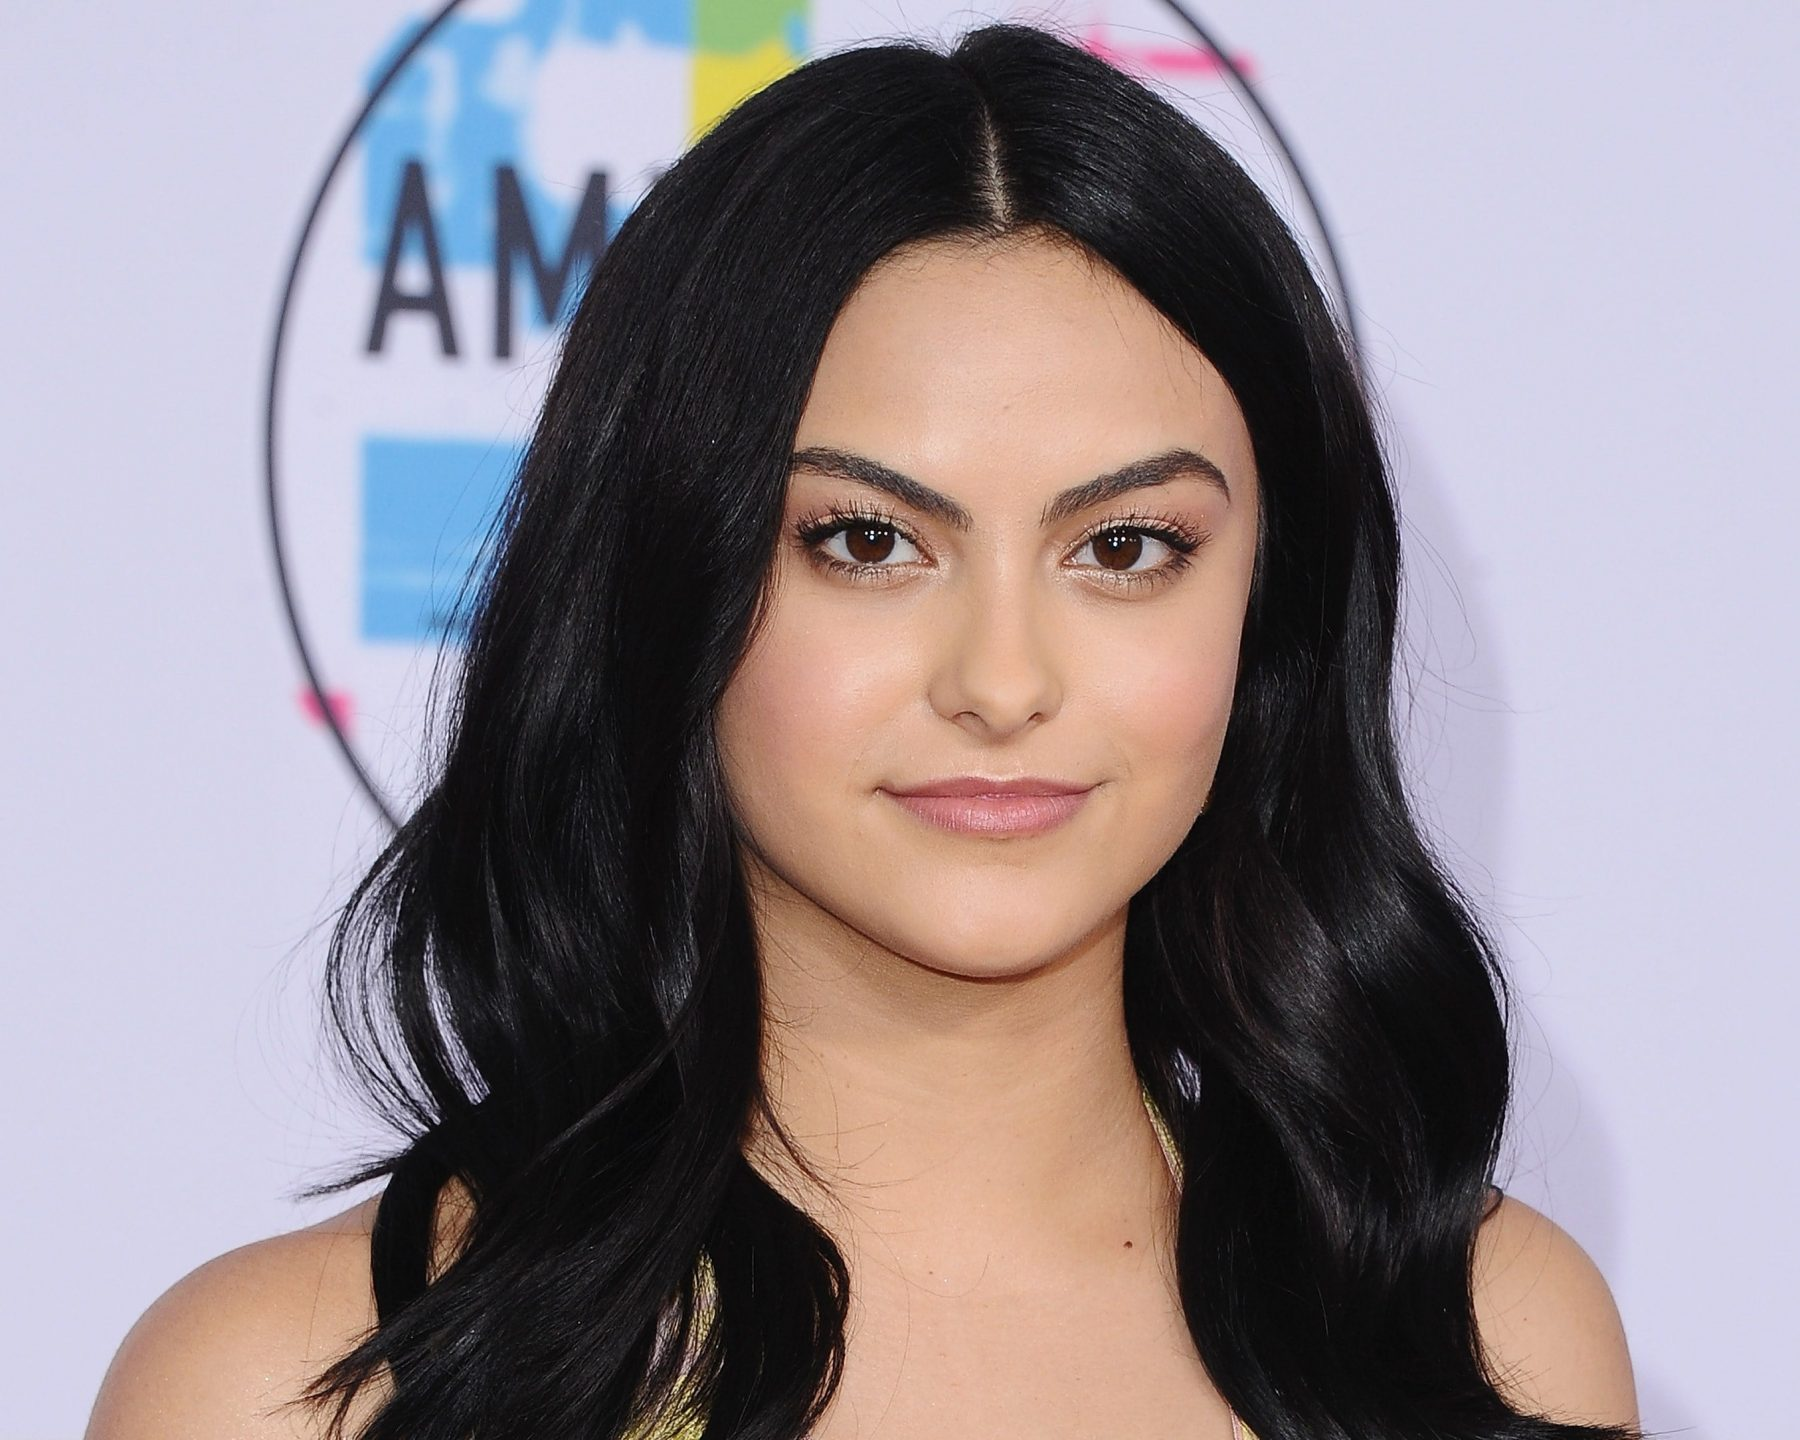 Camila Mendes Hd Wallpapers 7wallpapersnet